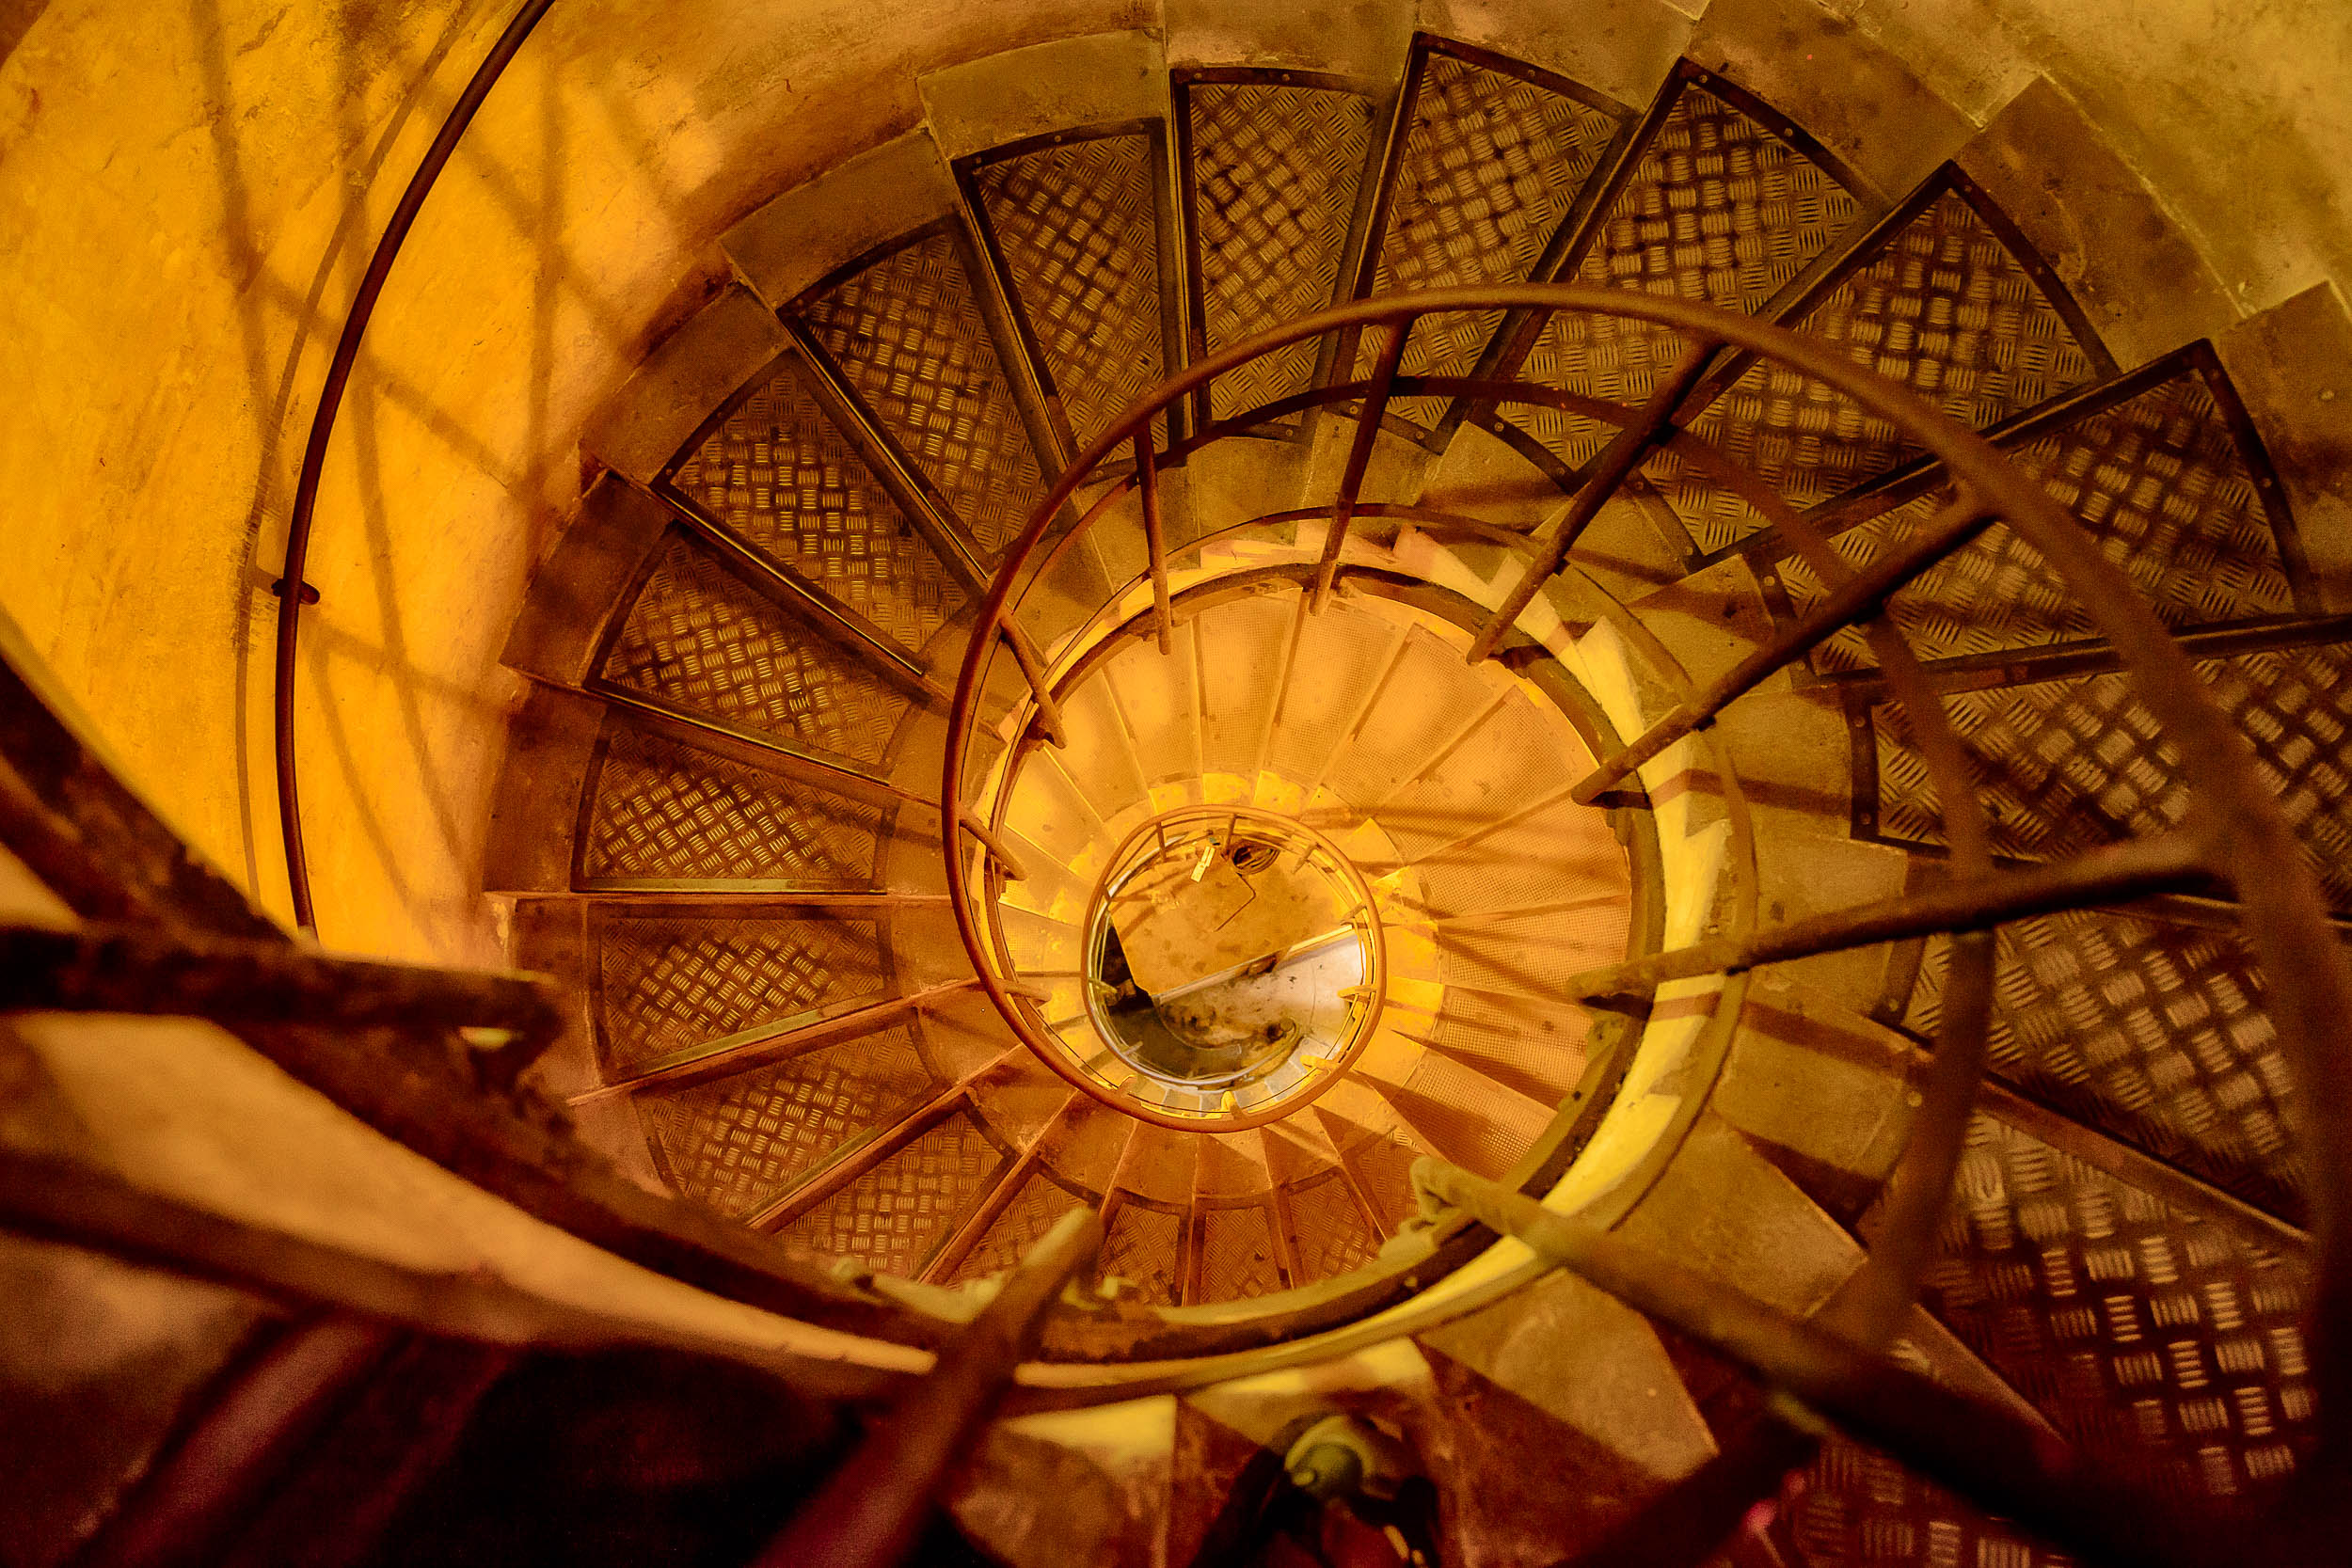 Looking down a spiral staircase that descends from the top of the Arc de Triomphe in Paris, France .